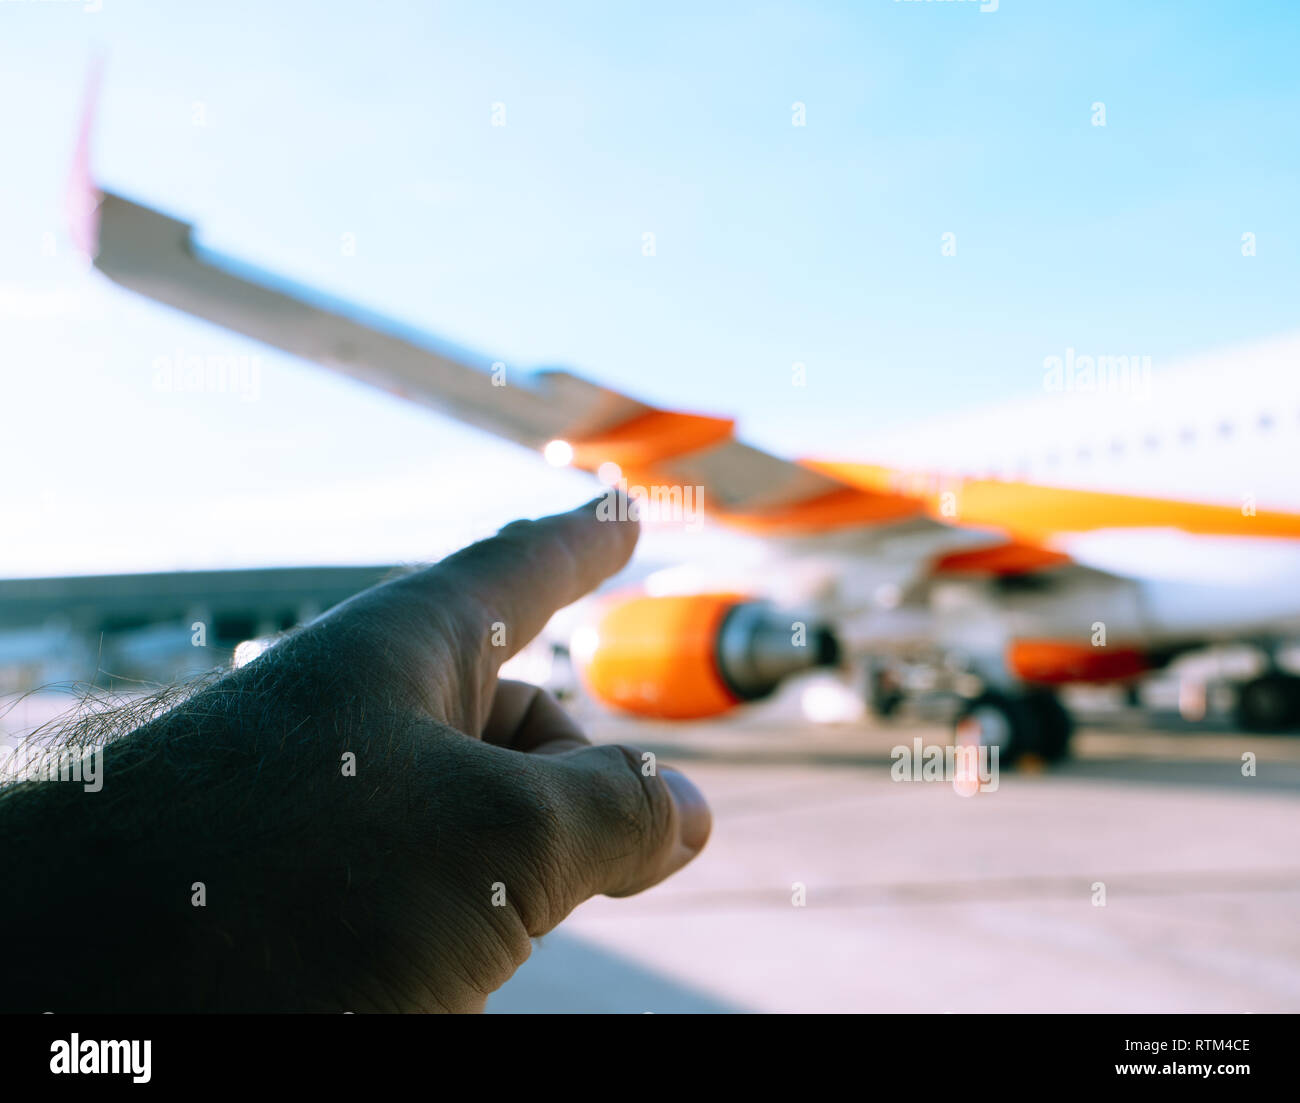 Finger pointing to the orange airplane on the tamrac of a modern airport - Stock Image